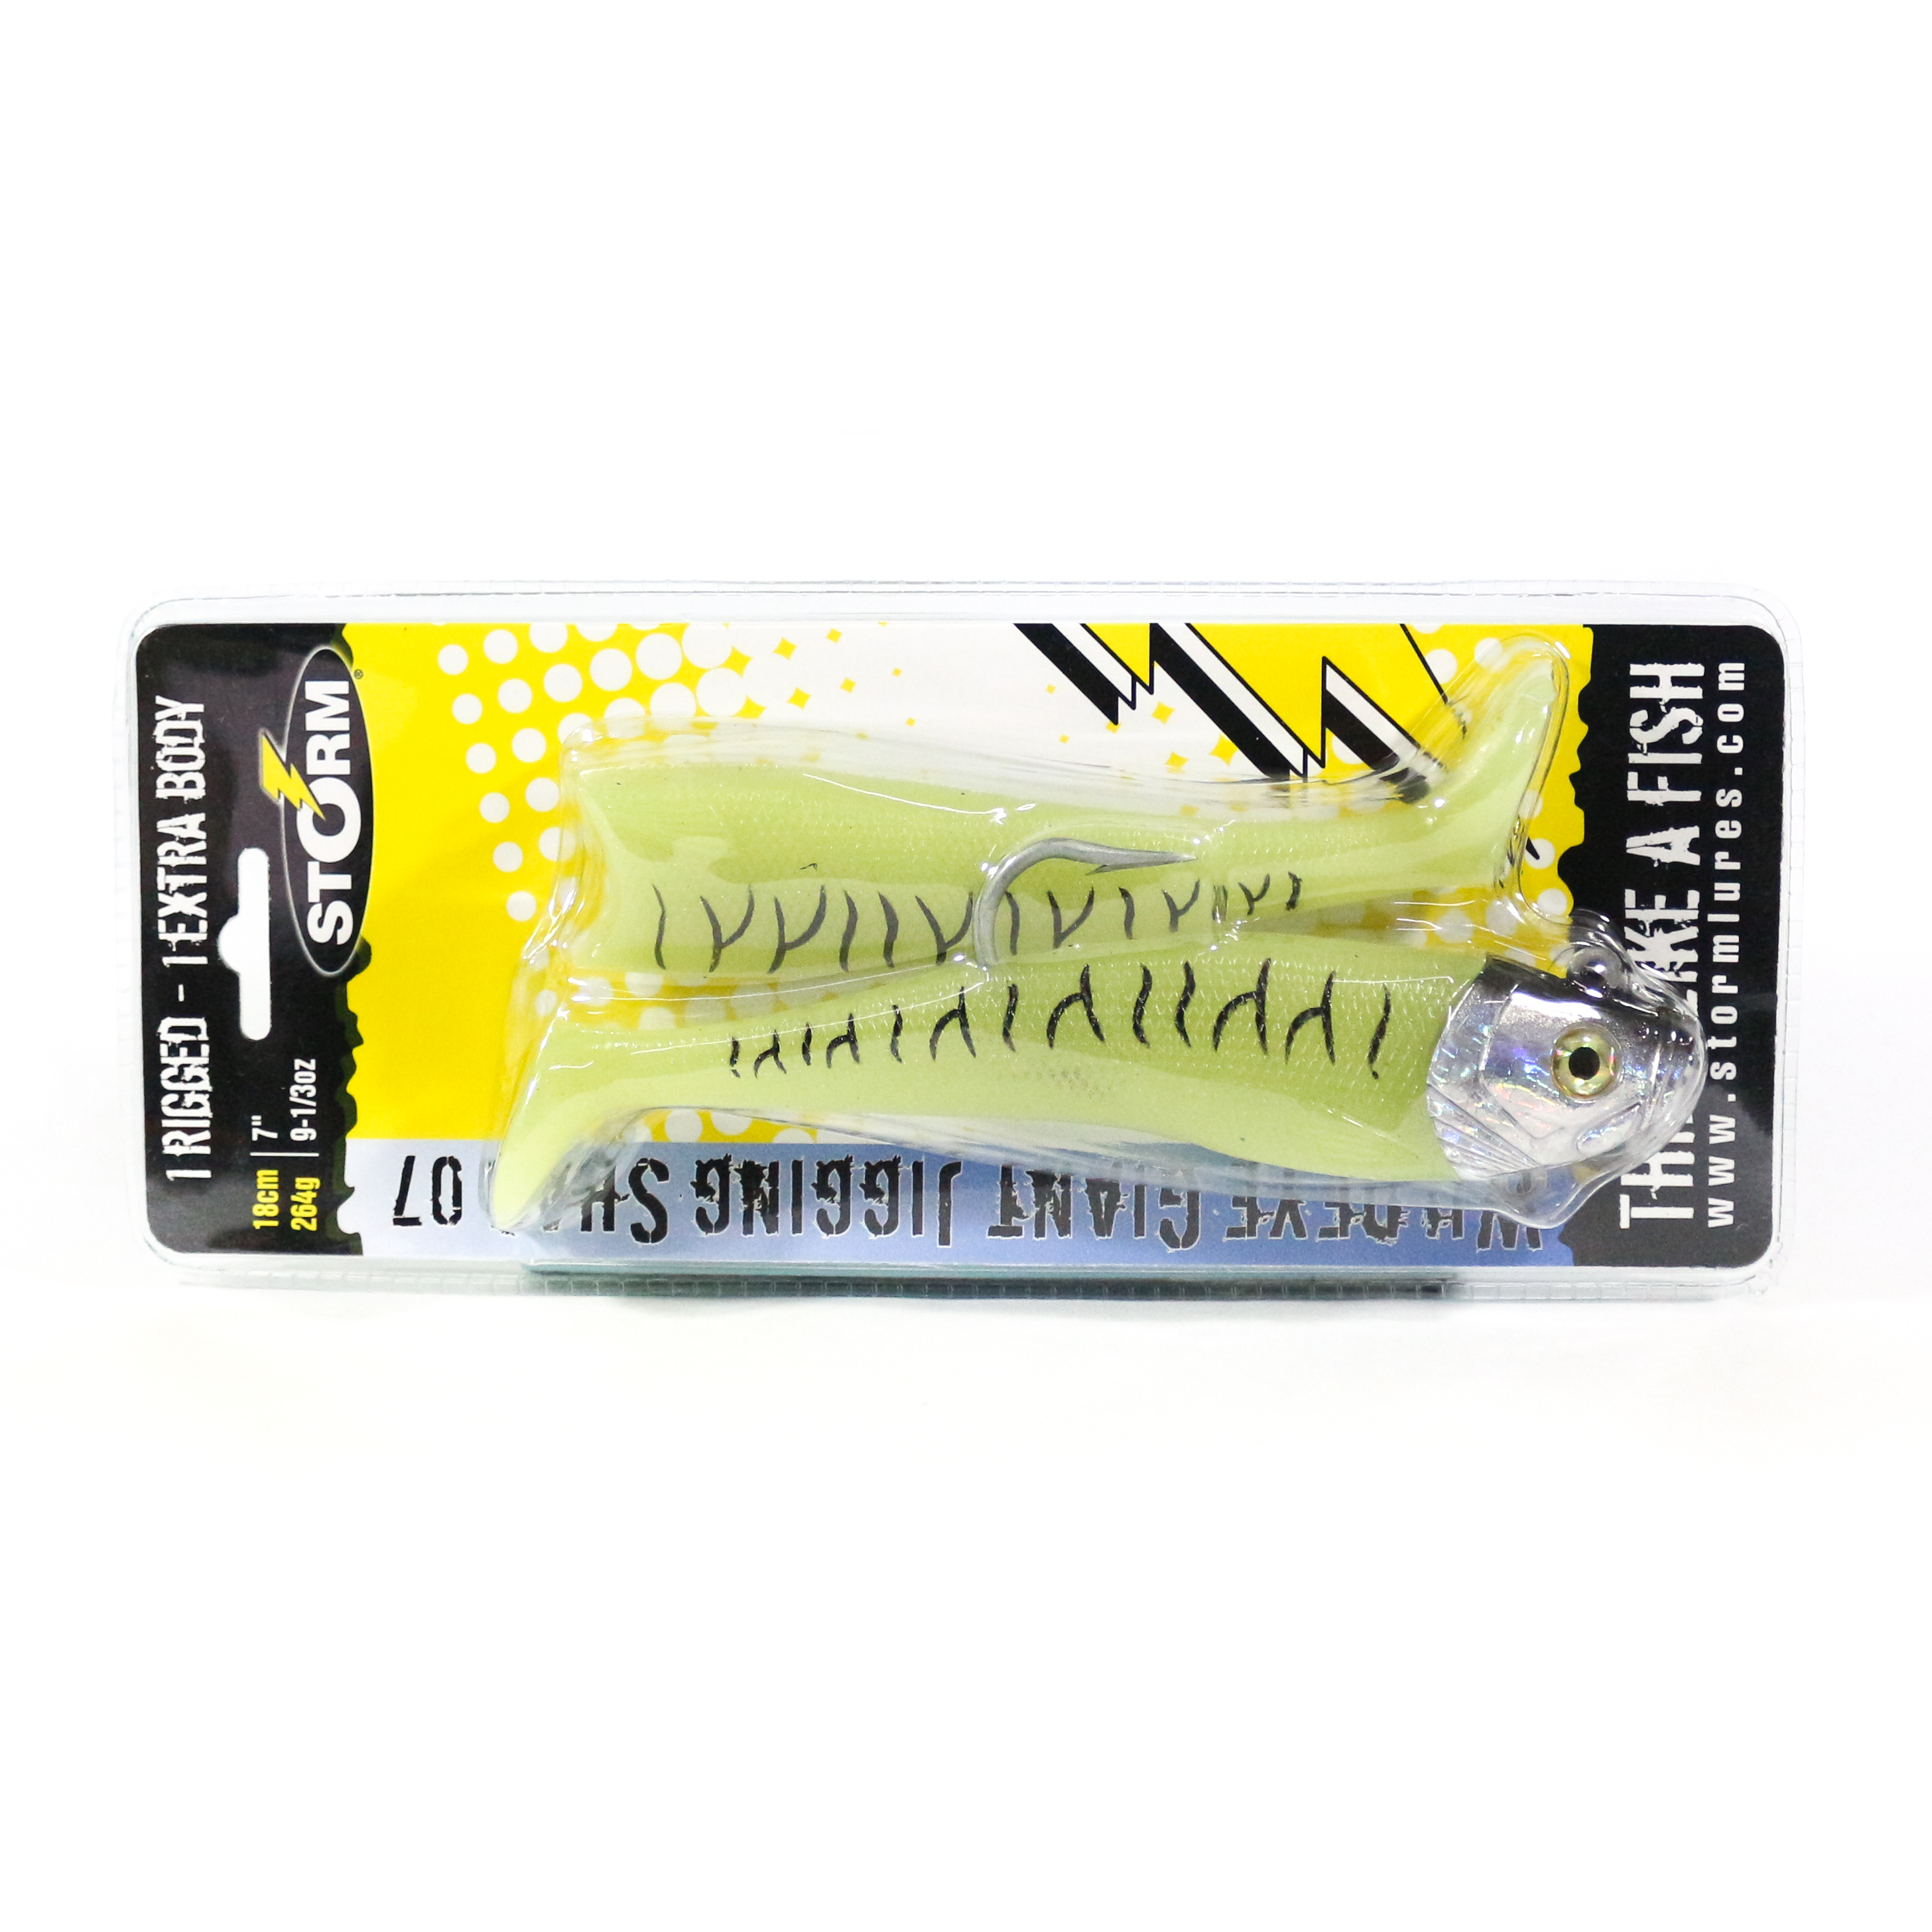 Storm Giant Jigging Shad Sinking Lure WGJSD07/GT (4117)